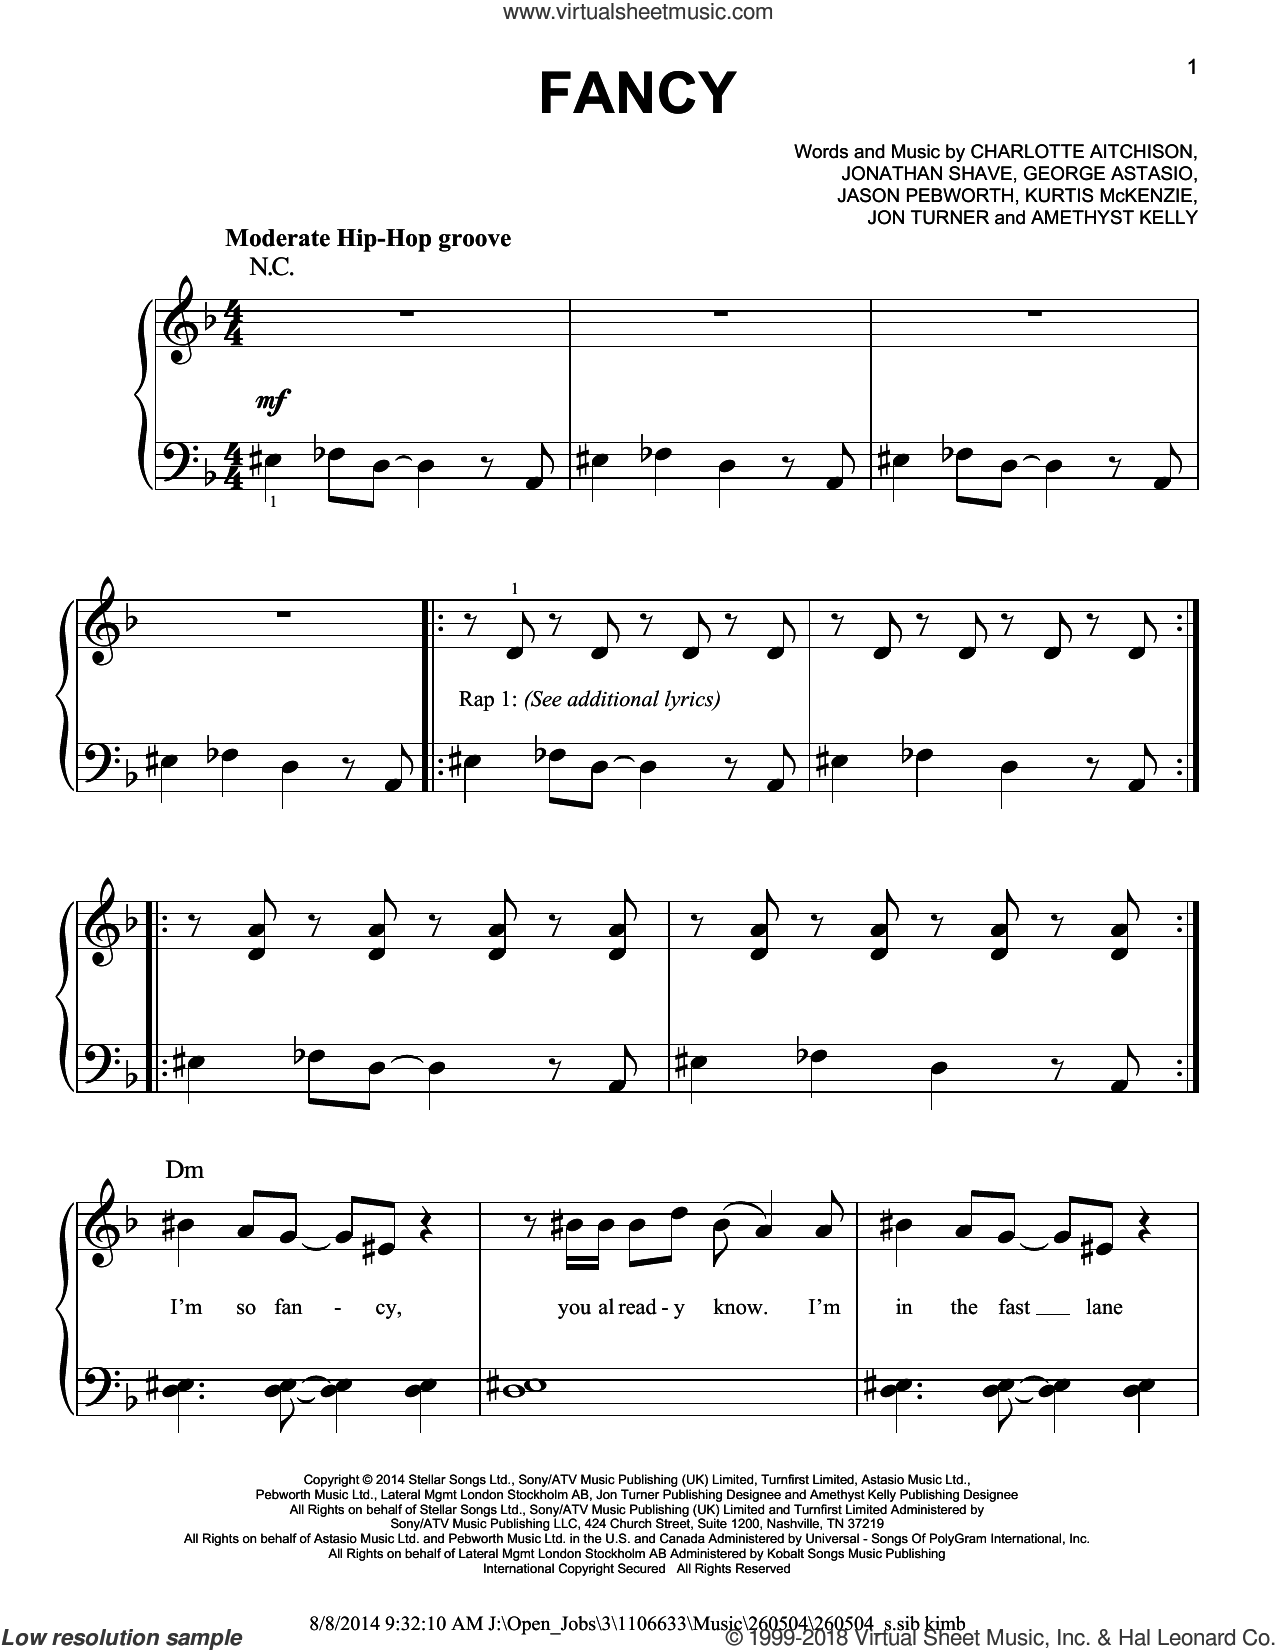 Fancy sheet music for piano solo by Iggy Azalea Featuring Charli XCX, Amethyst Kelly, Charlotte Aitchison, George Astasio, Jason Pebworth, Jon Turner, Jonathan Shave and Kurtis McKenzie, easy